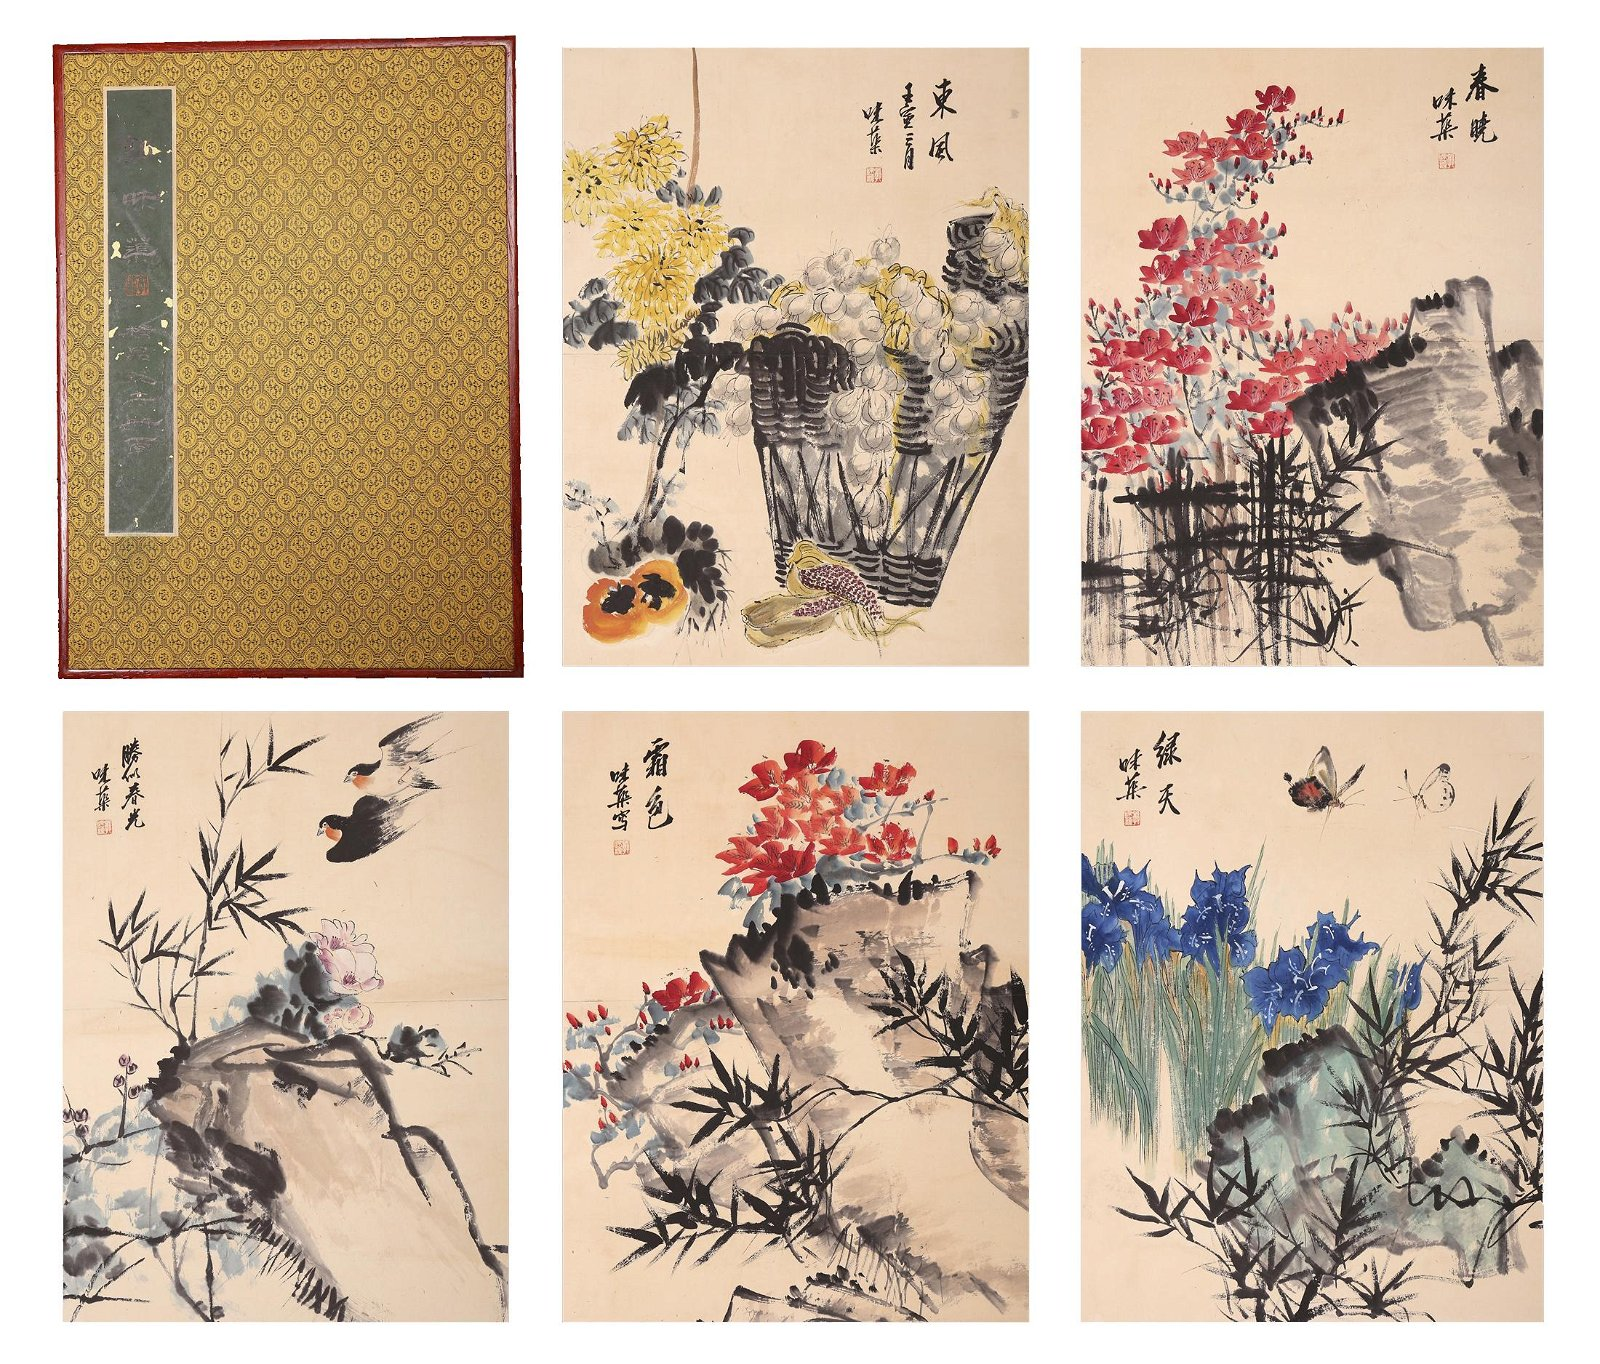 Weiqu Guo - Flower Painting